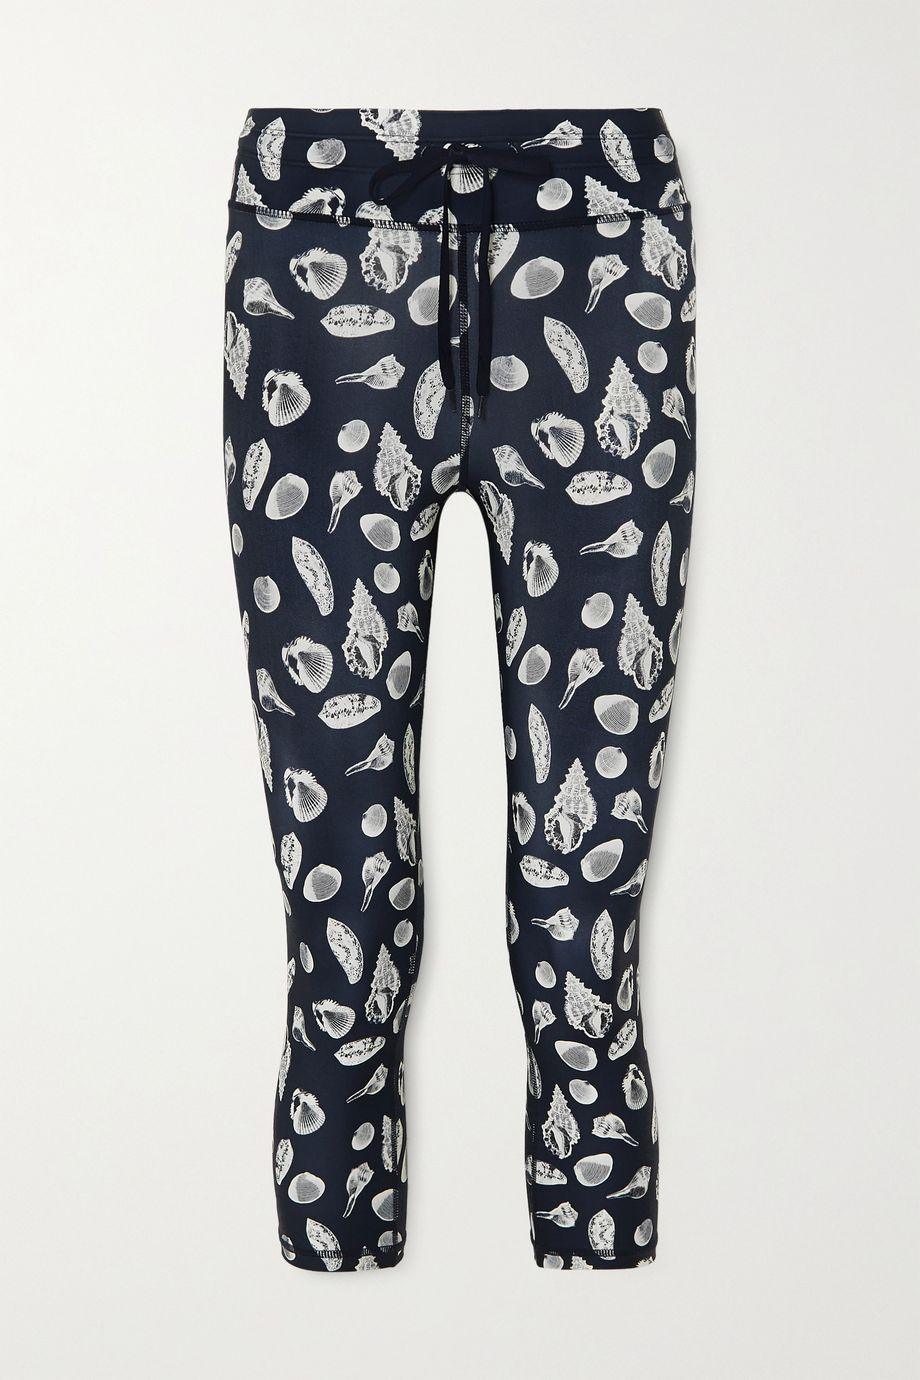 The Upside Shells cropped printed stretch leggings